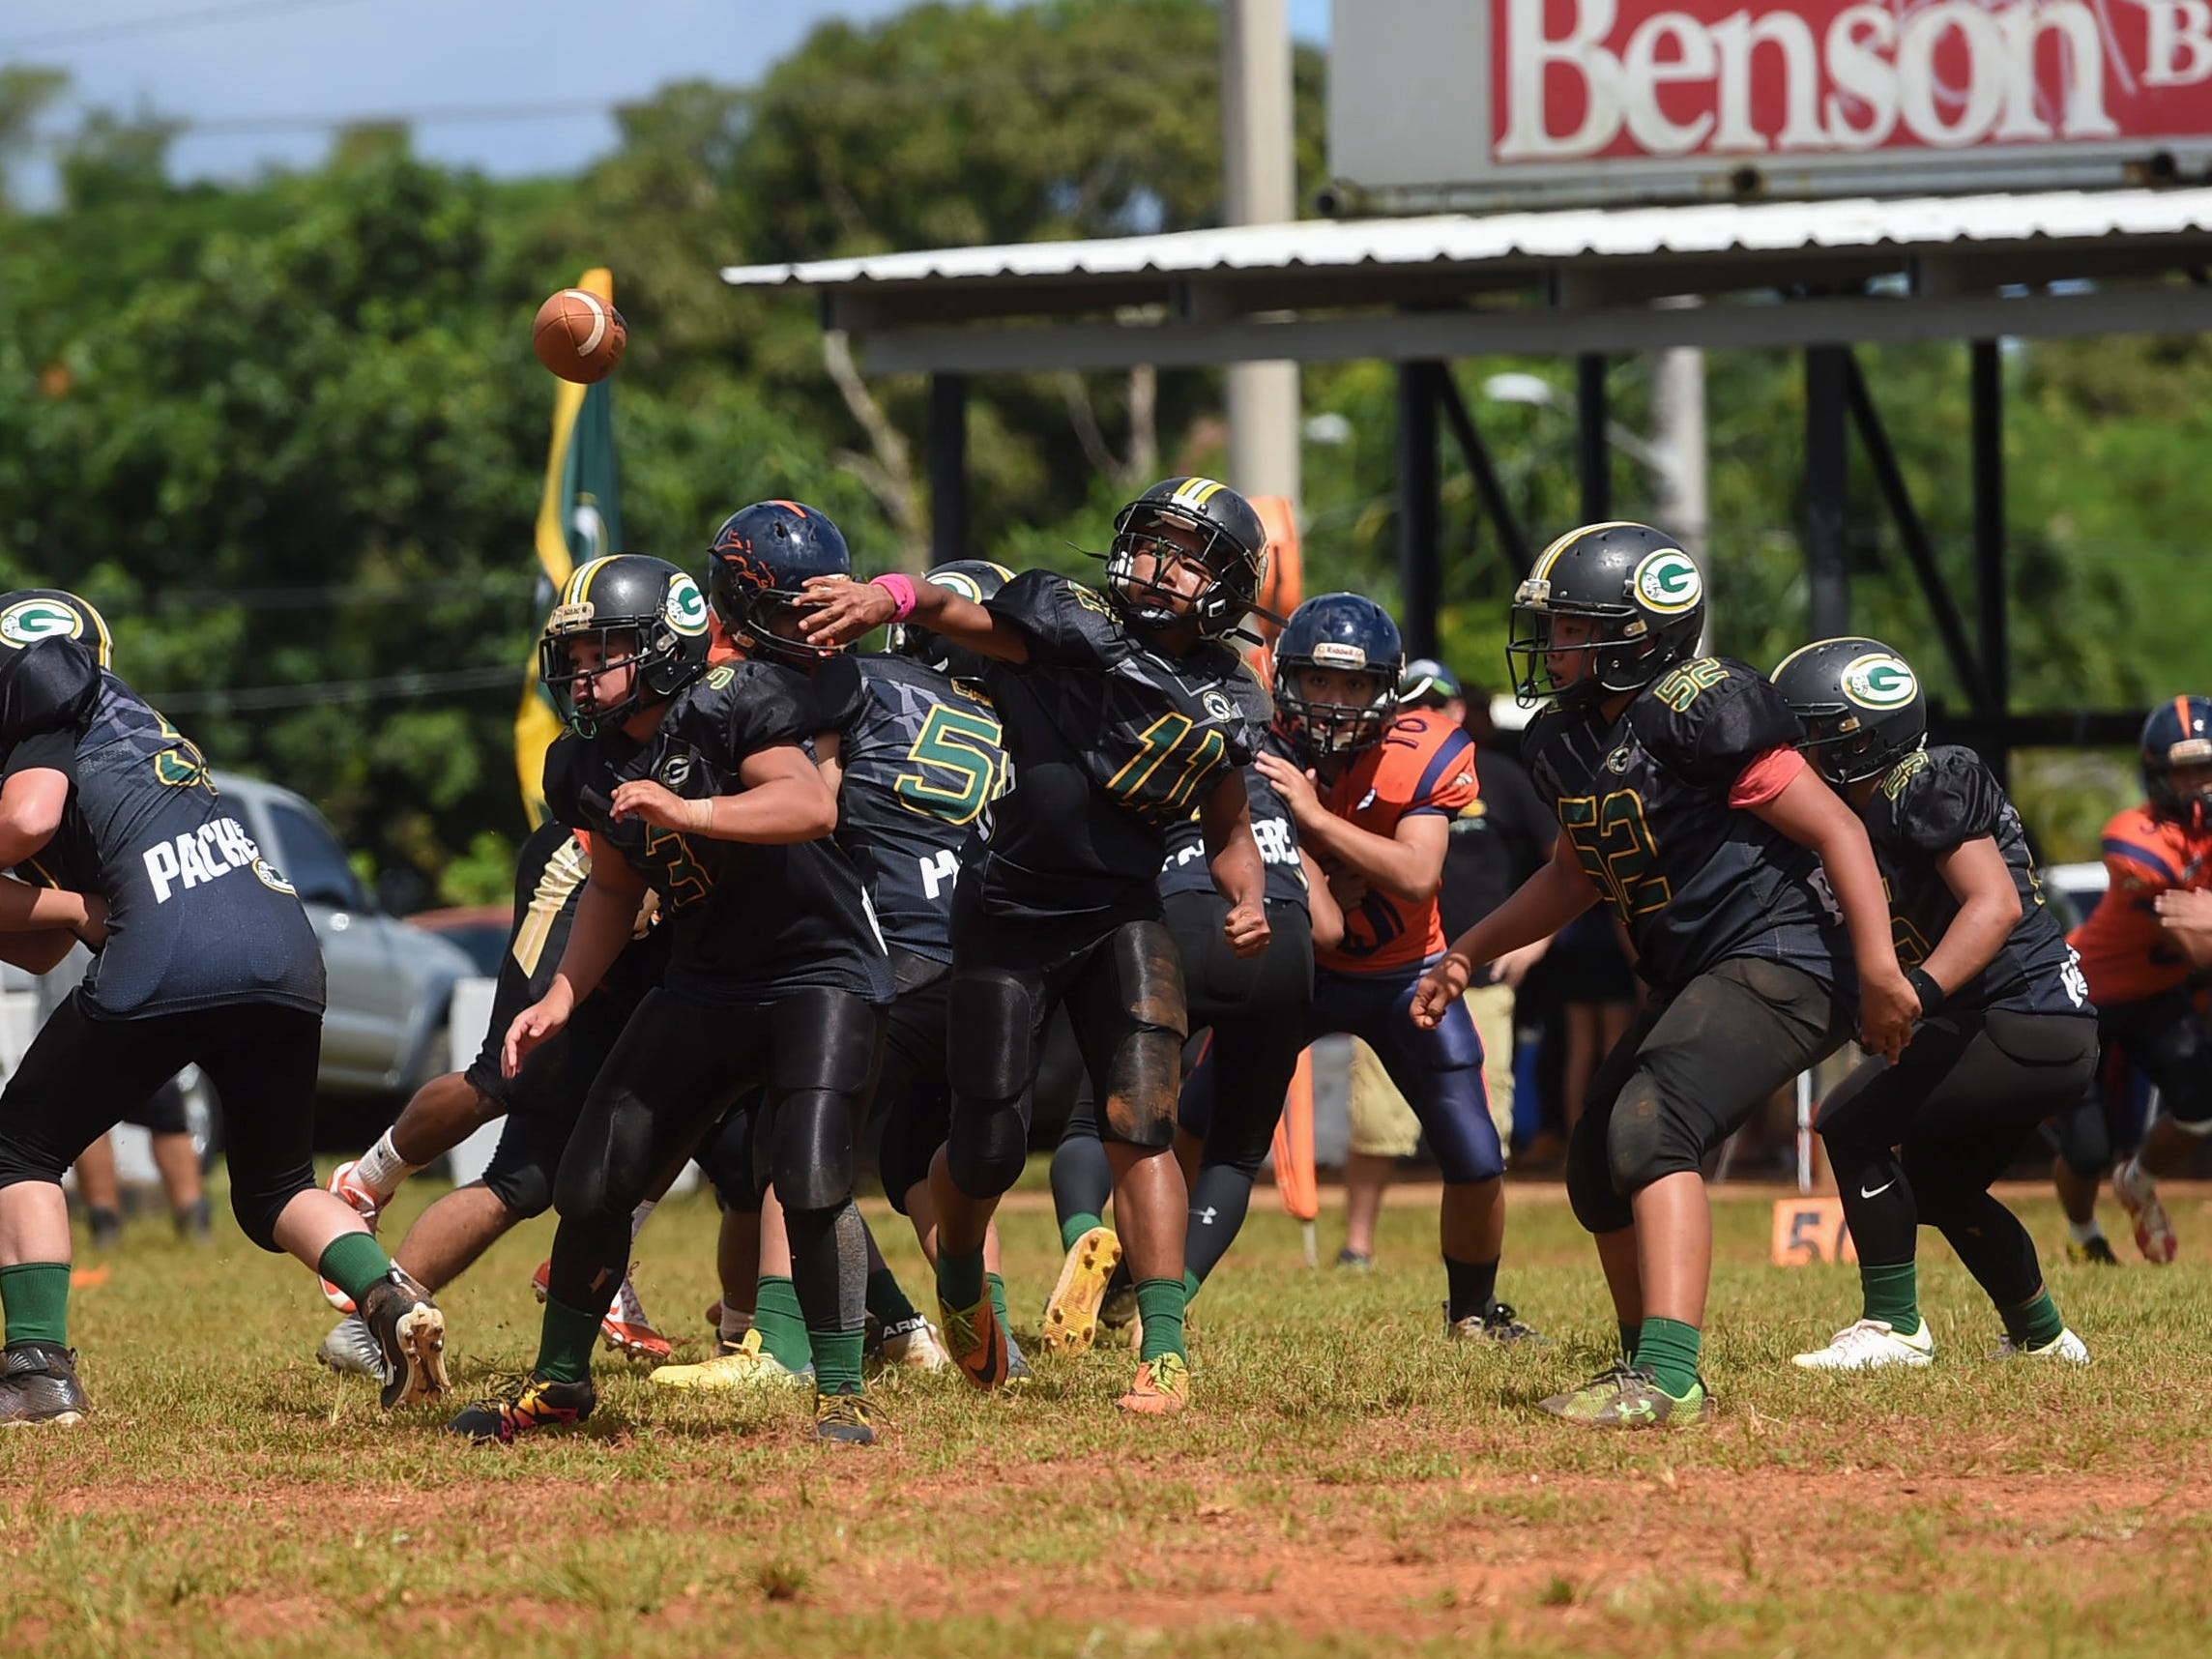 Guam Packers quarterback Dreyvin Apatang (11) passes out of the pocket during a Guam National Youth Football Federation Matua division game at the Mikkel Tan I. Vy Field in Tiyan on Sept. 2, 2018.